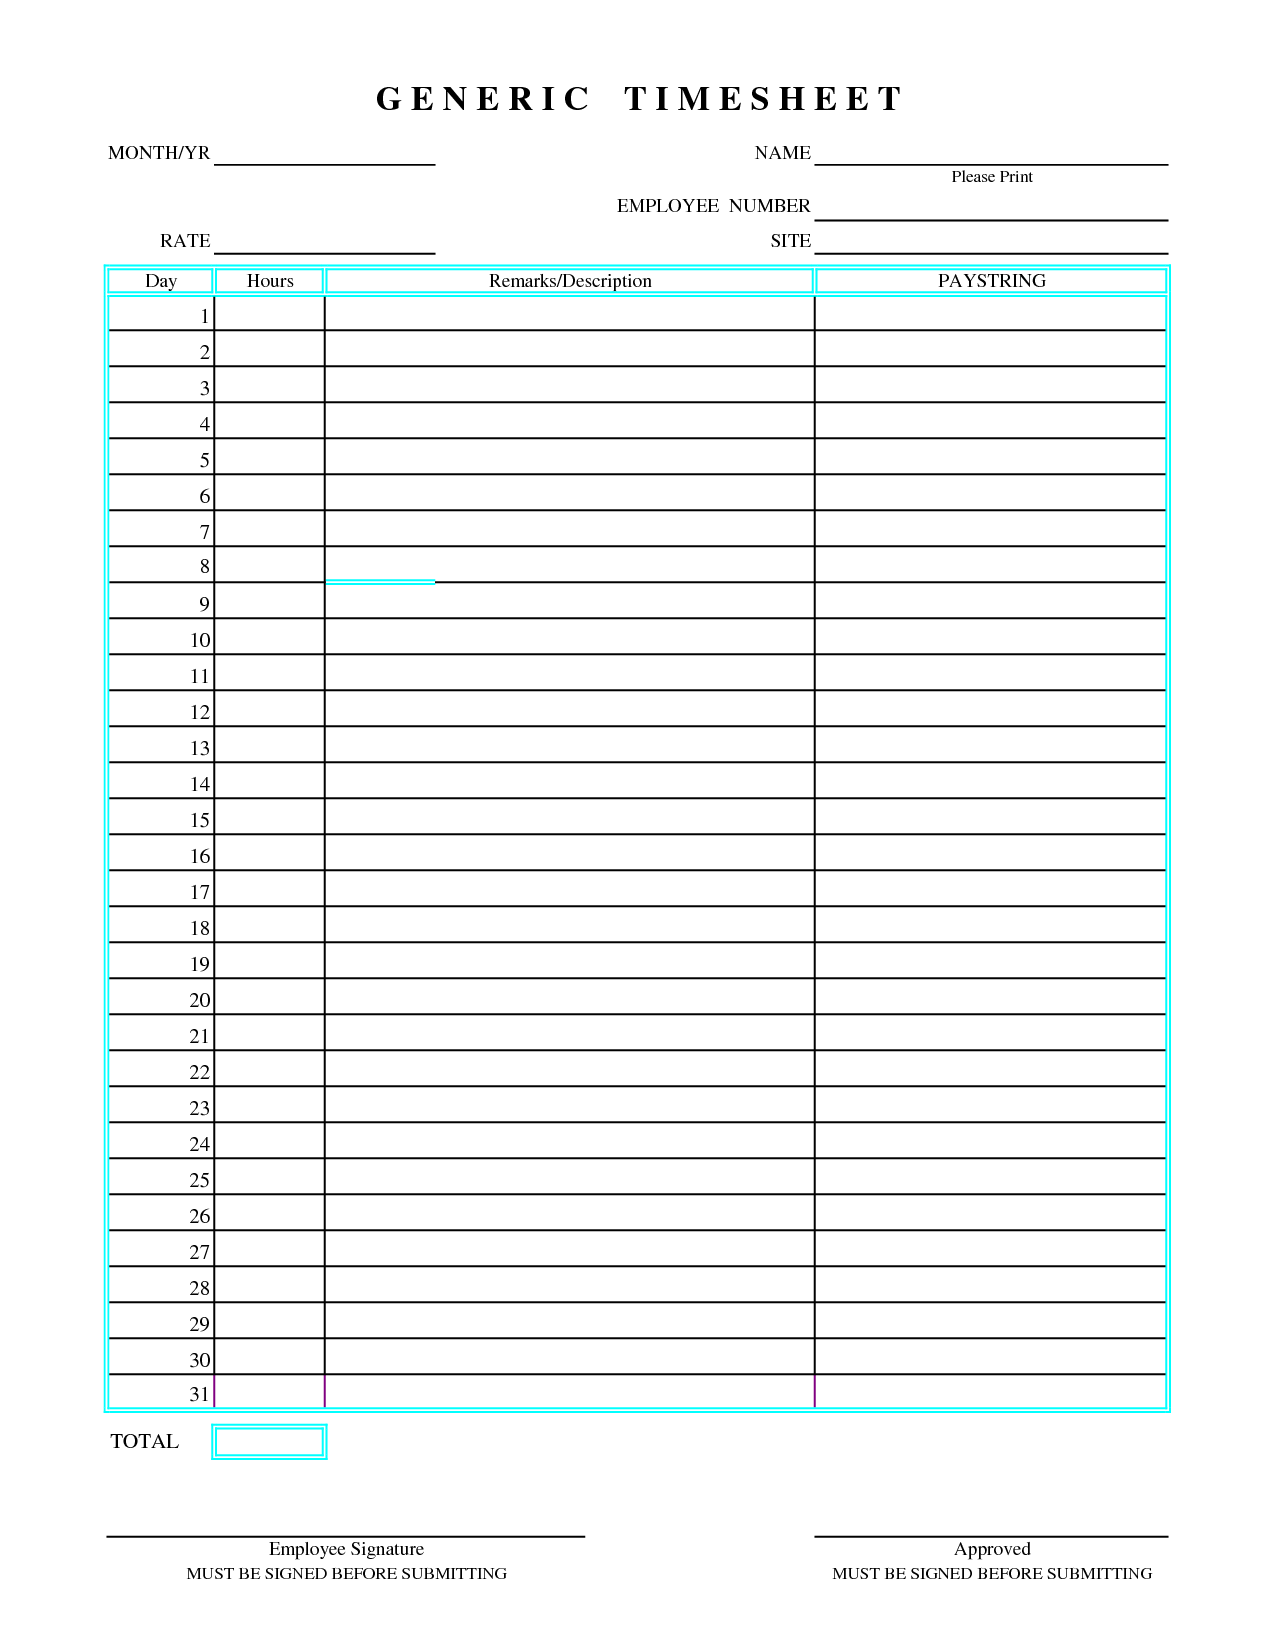 Template Printable Images Gallery Category Page 62